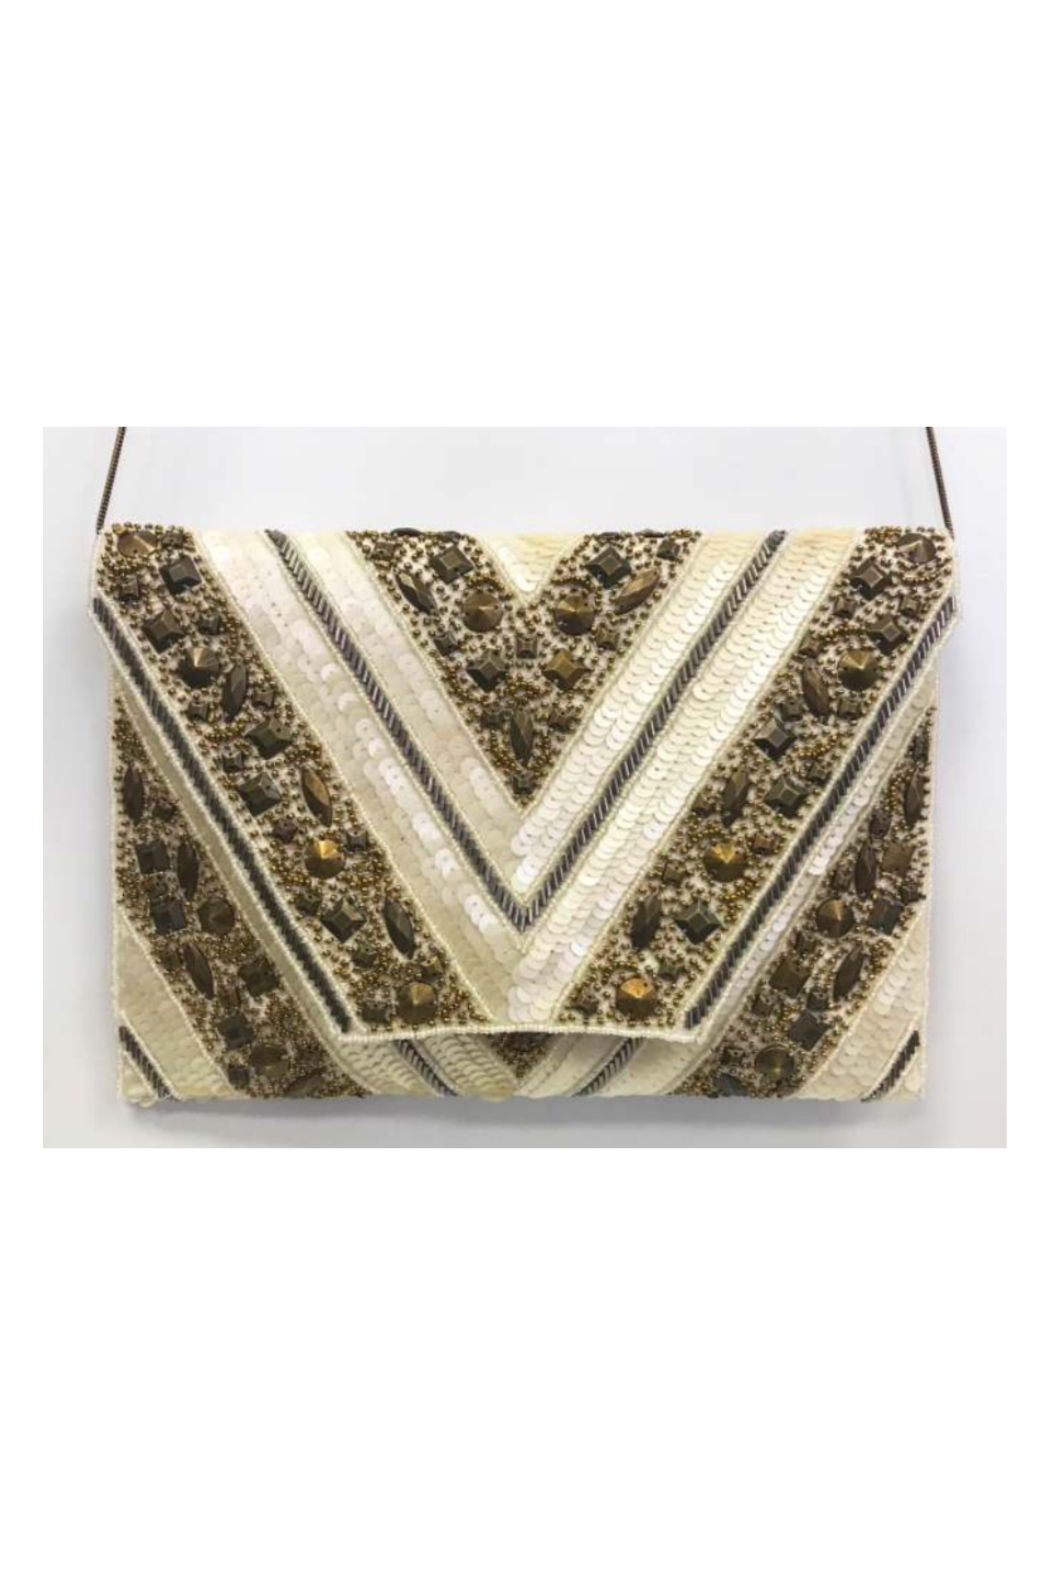 Ricki Designs Gold Metallic V Design Clutch - Main Image